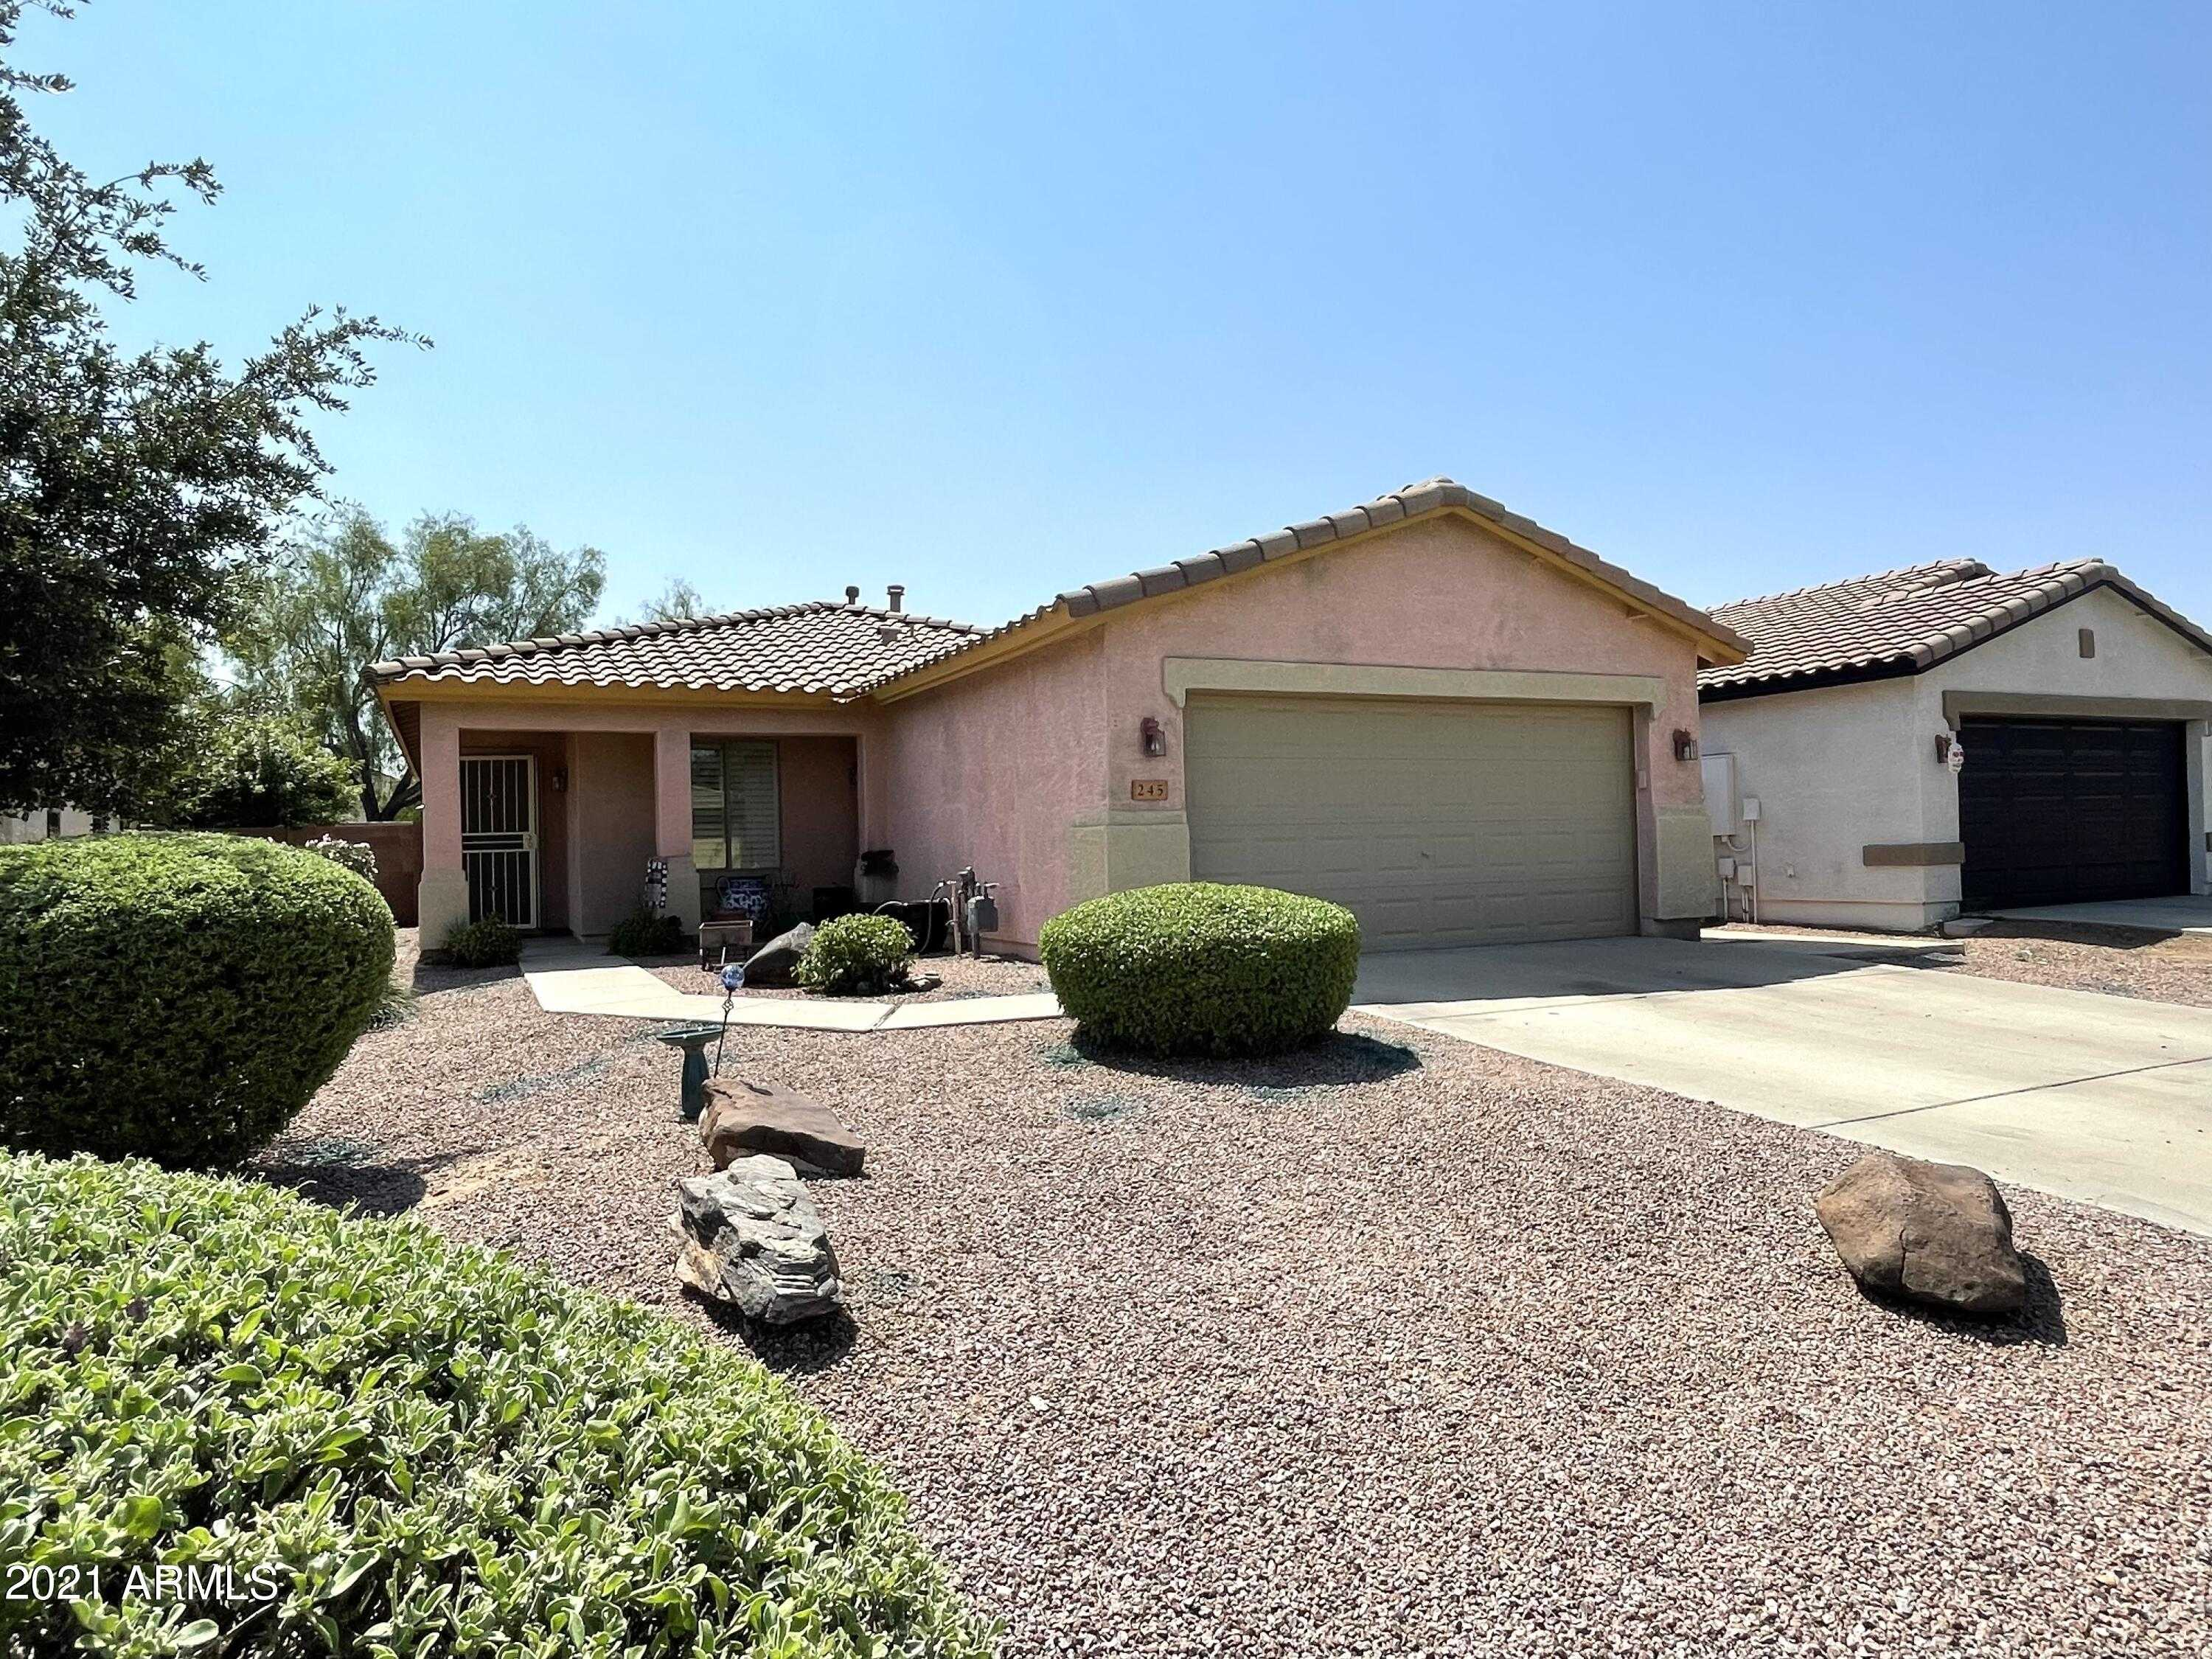 $379,990 - 4Br/2Ba - Home for Sale in Circle Cross Ranch, San Tan Valley